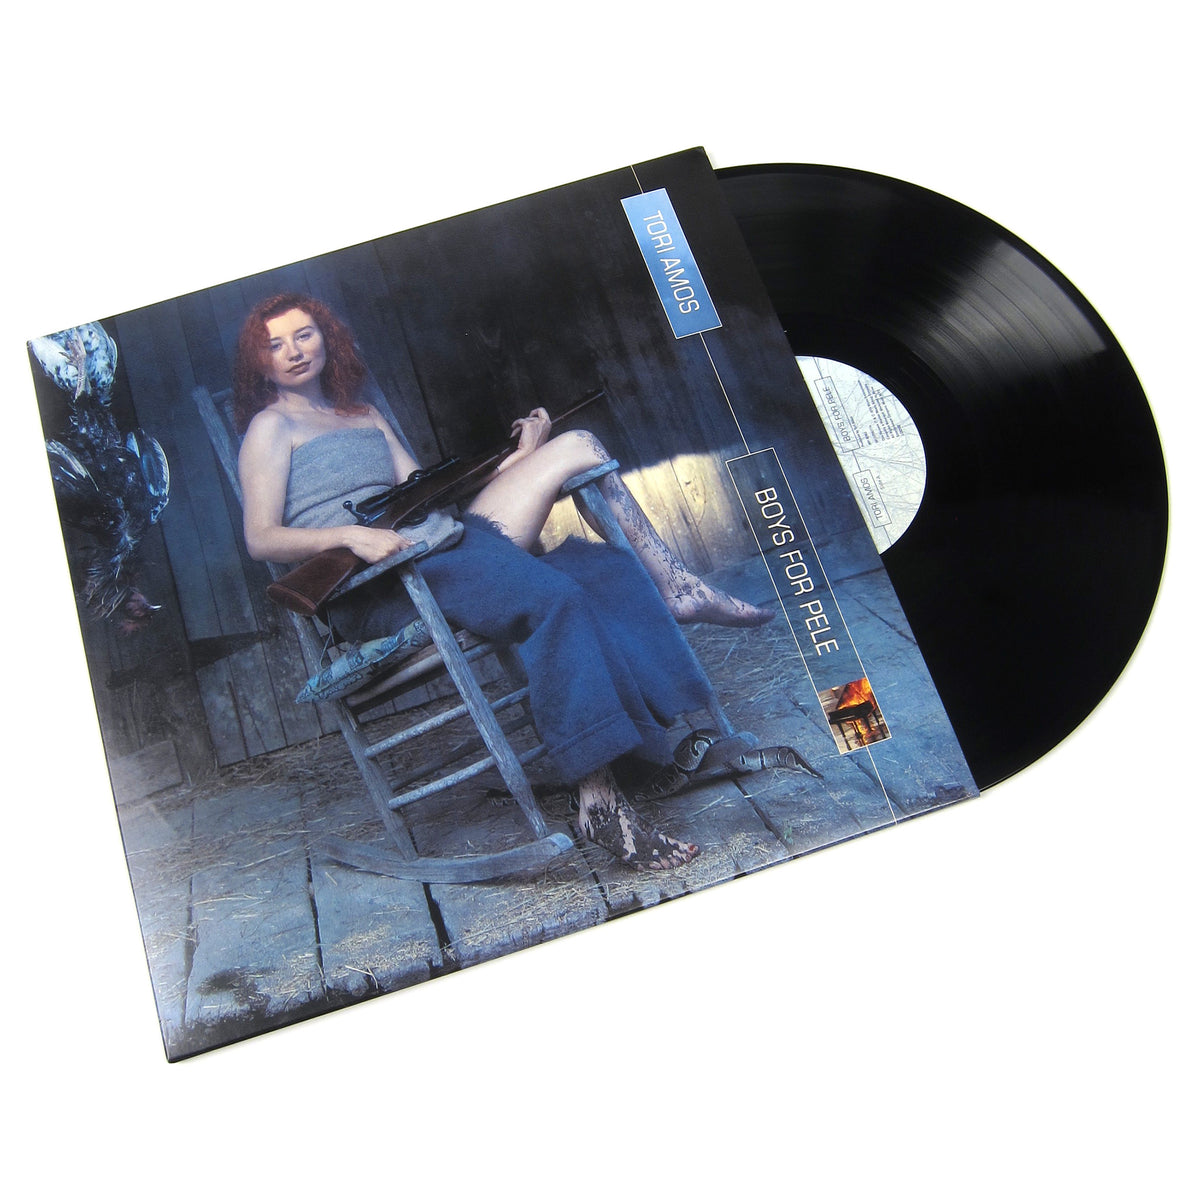 Tori Amos: Boys For Pele (180g) Vinyl 2LP